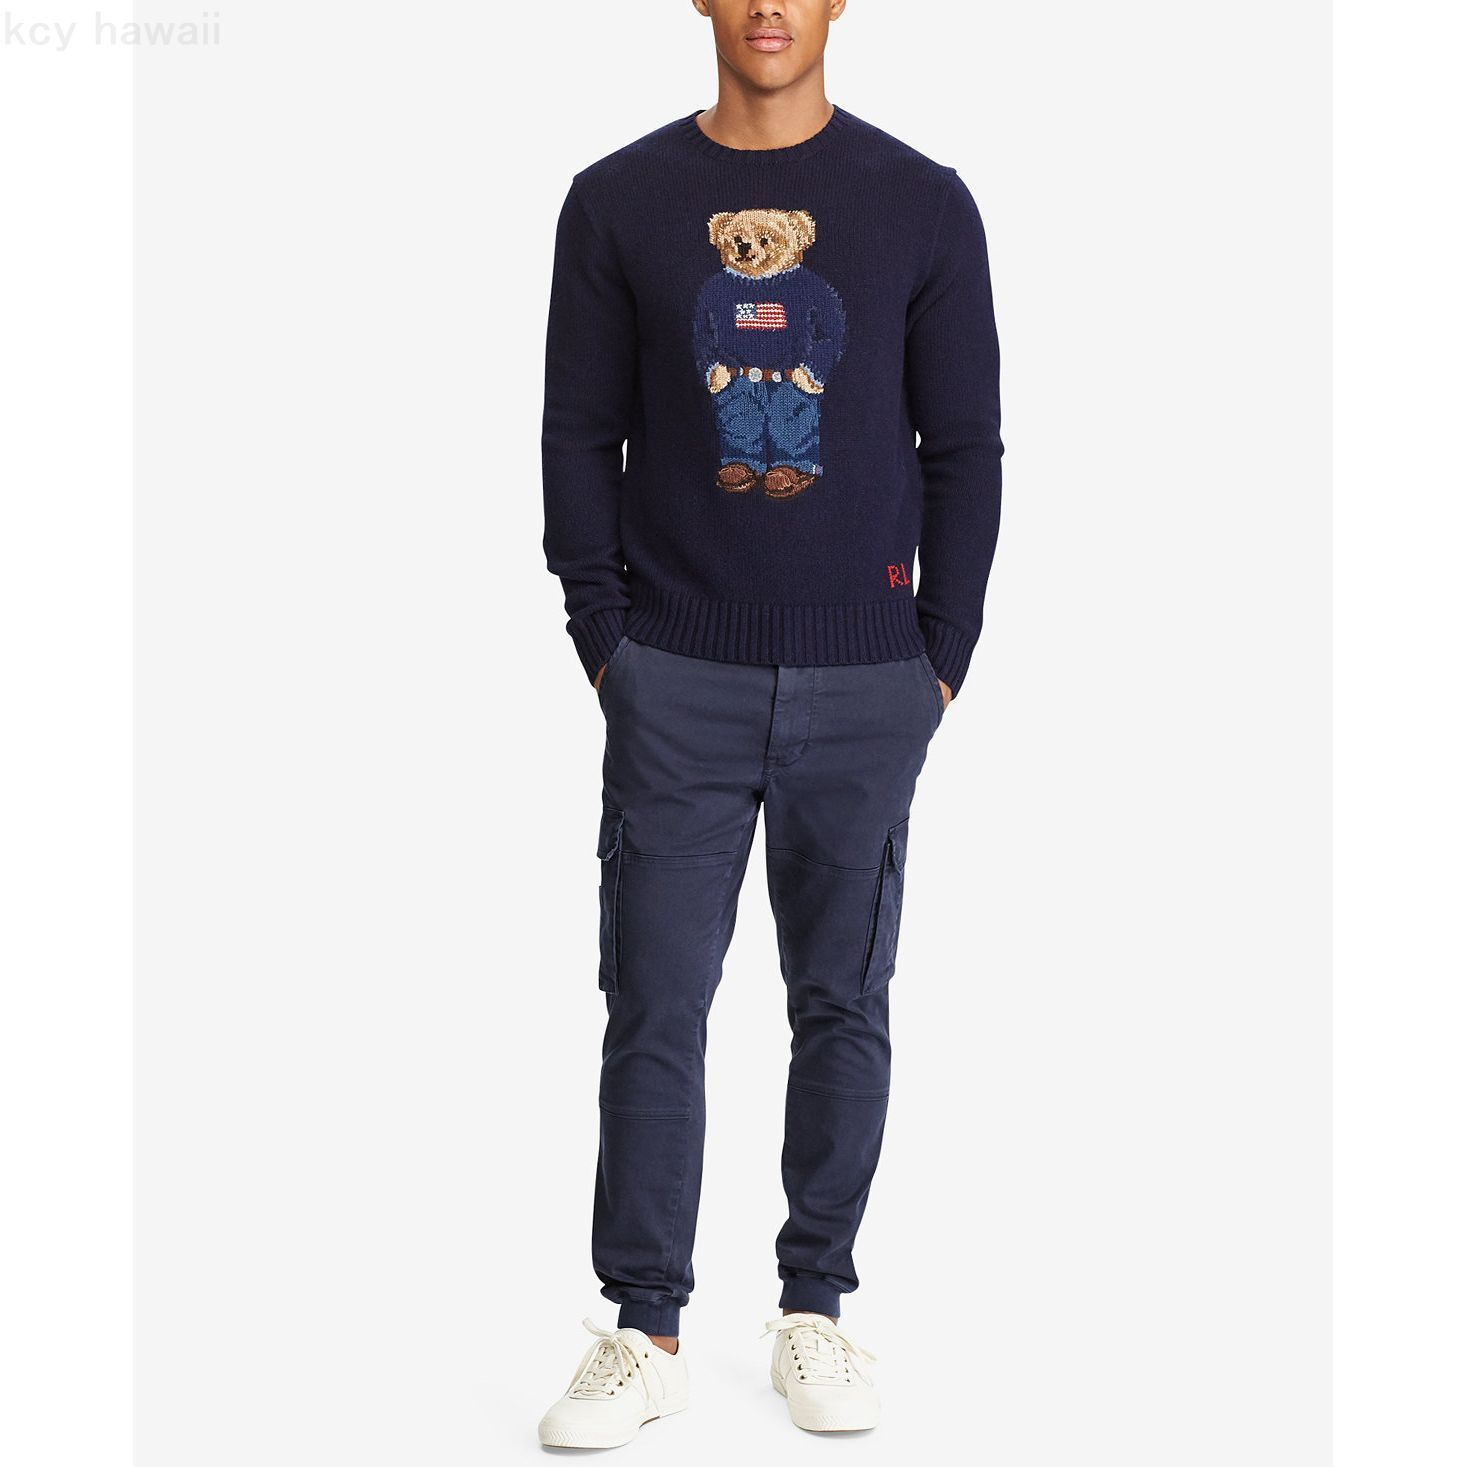 ポロラルフローレン☆The Iconic Polo Bear Sweater